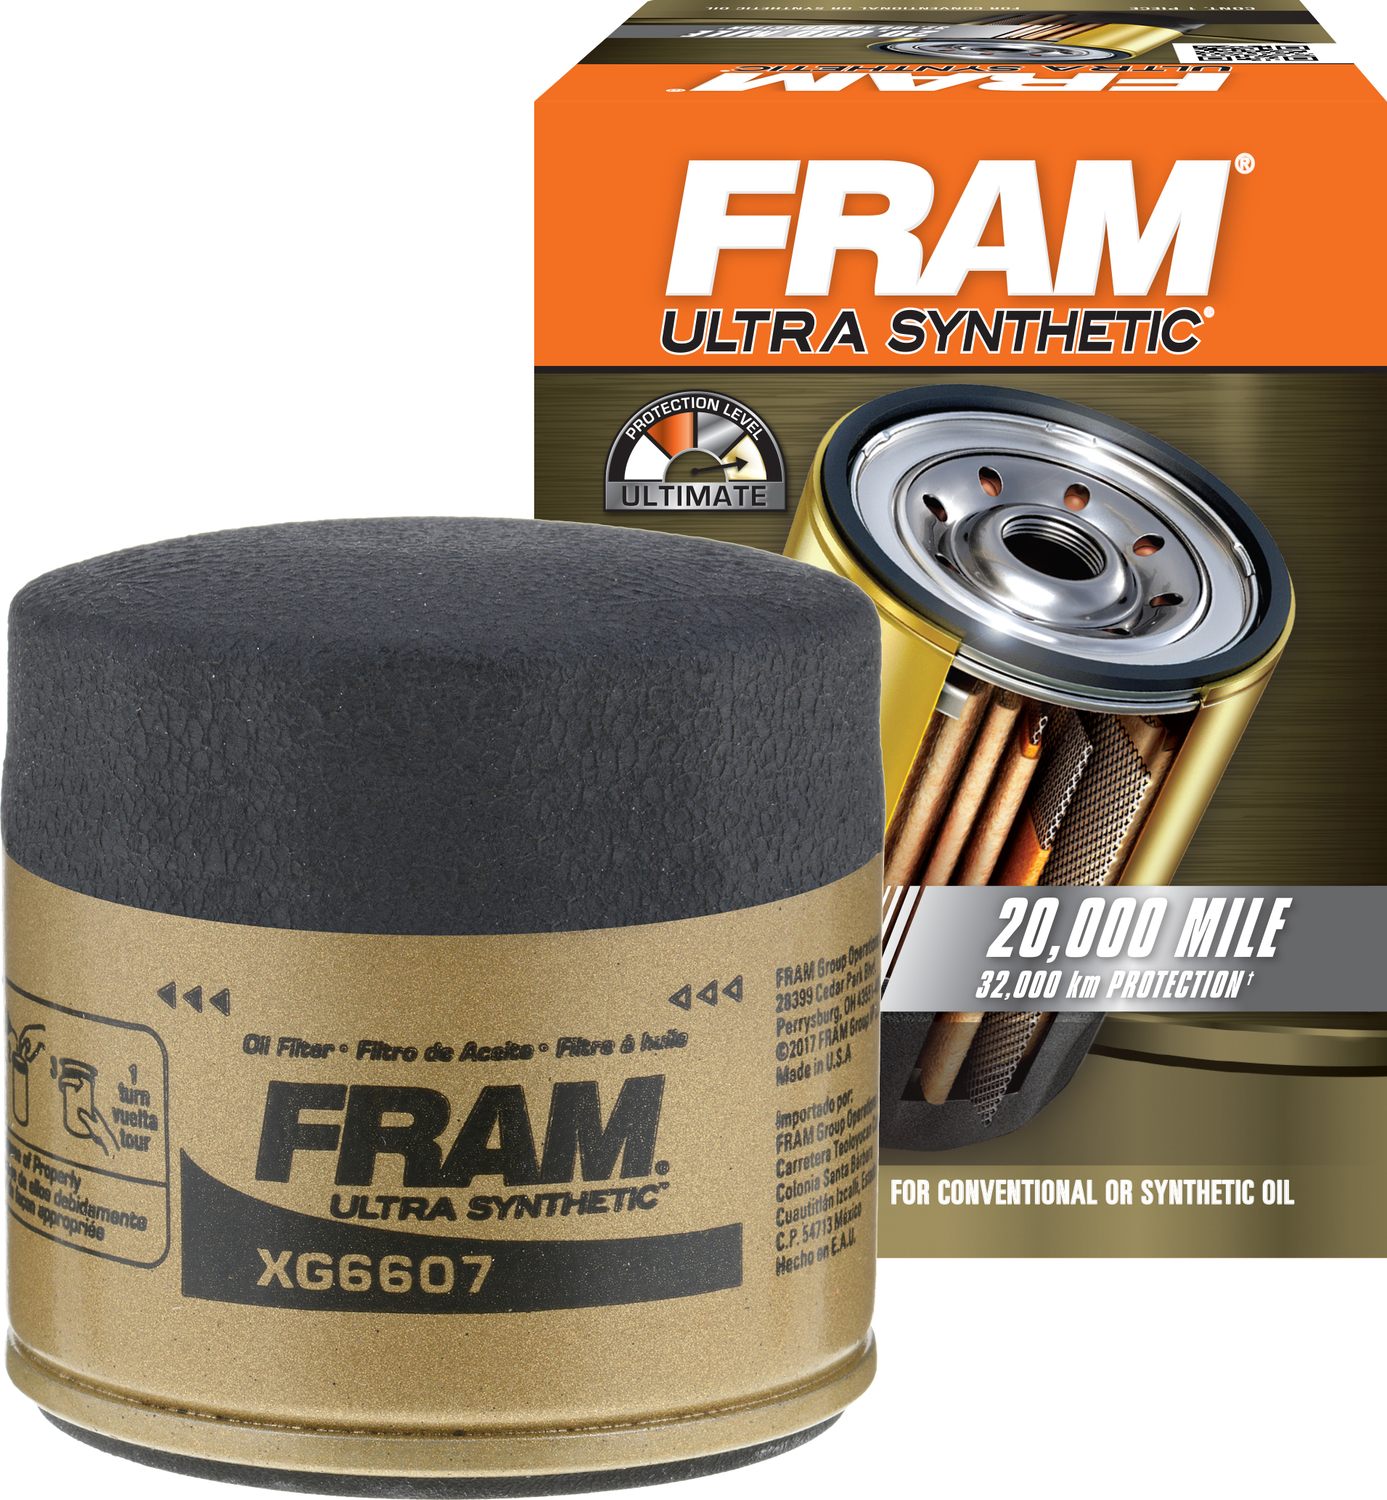 FRAM Ultra Synthetic Oil Filter, XG6607